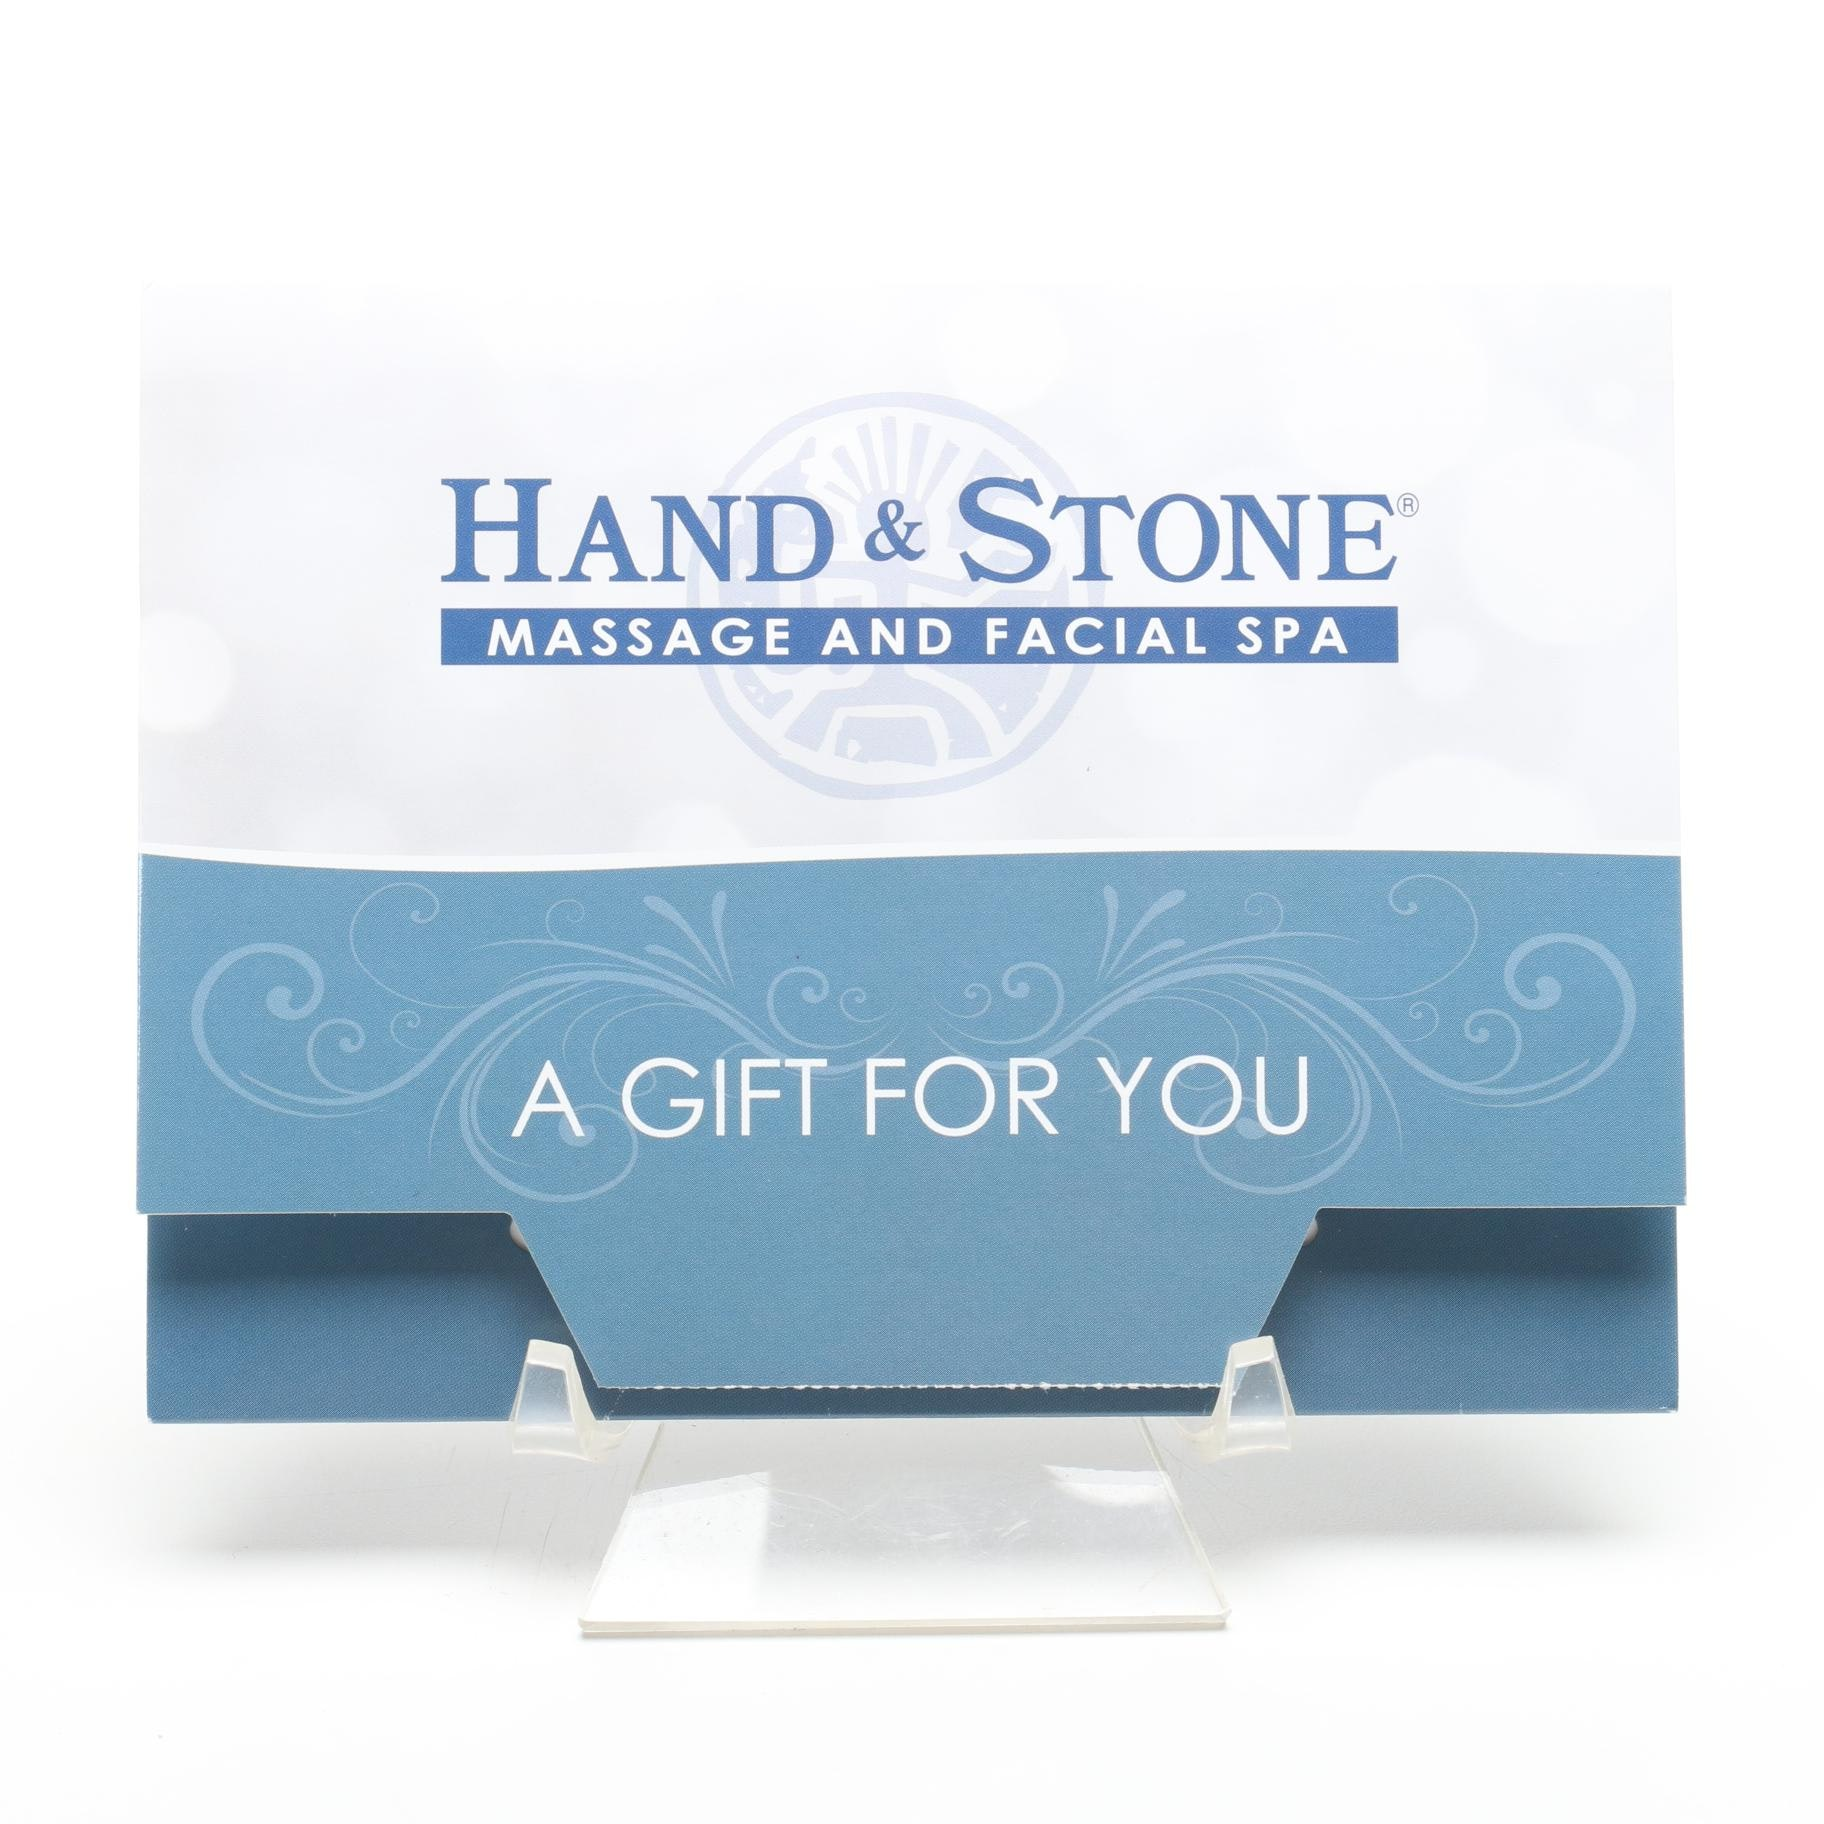 Hand & Stone Massage and Facial Spa Gift Card